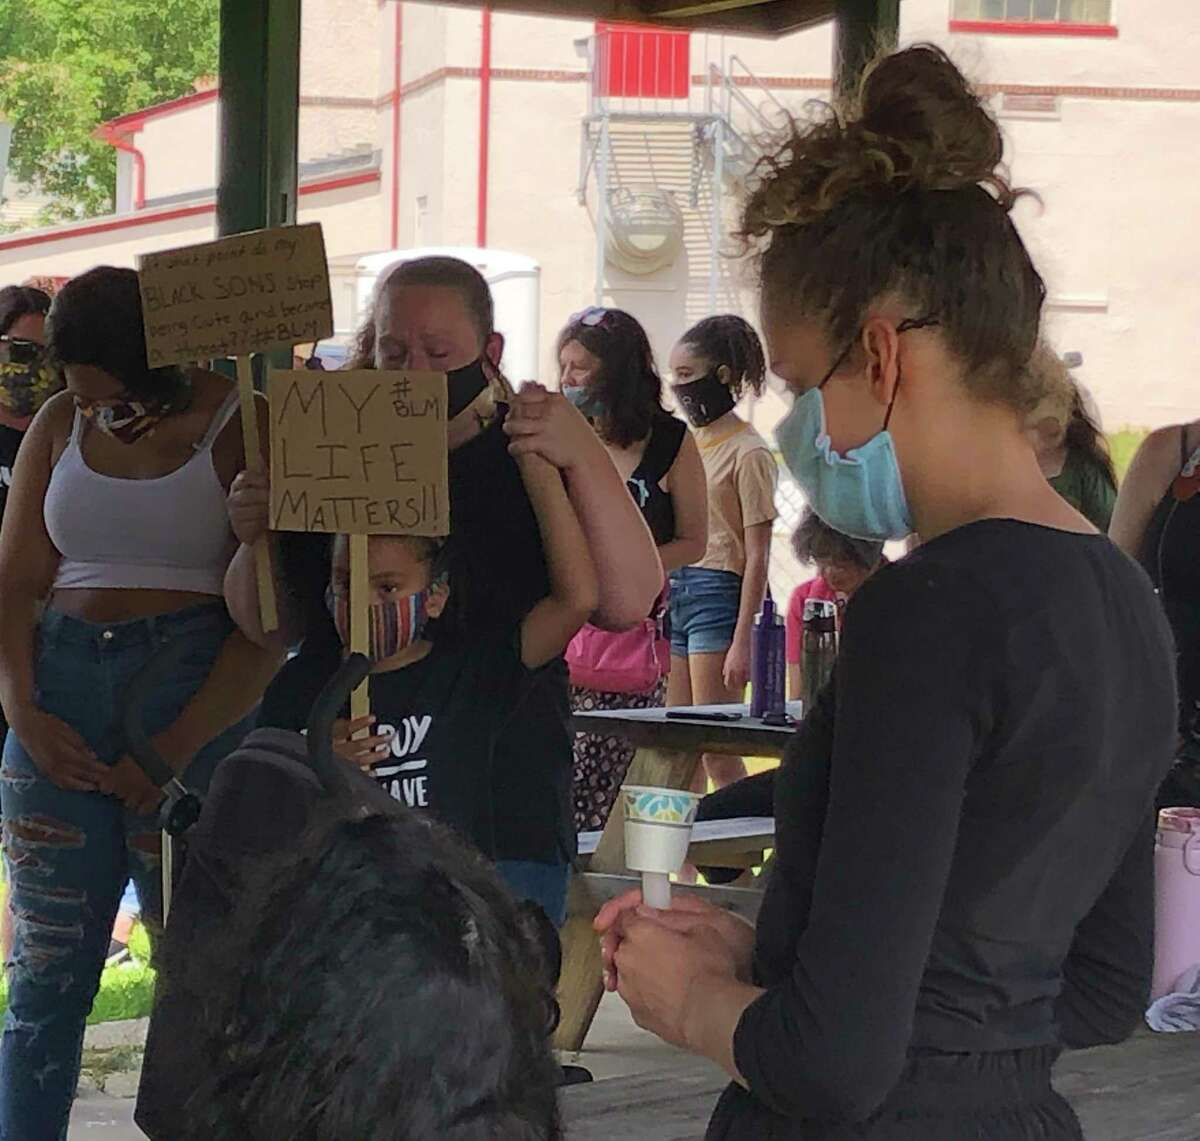 Protesters at a rally in Plainfield gather Saturday near the town hall.